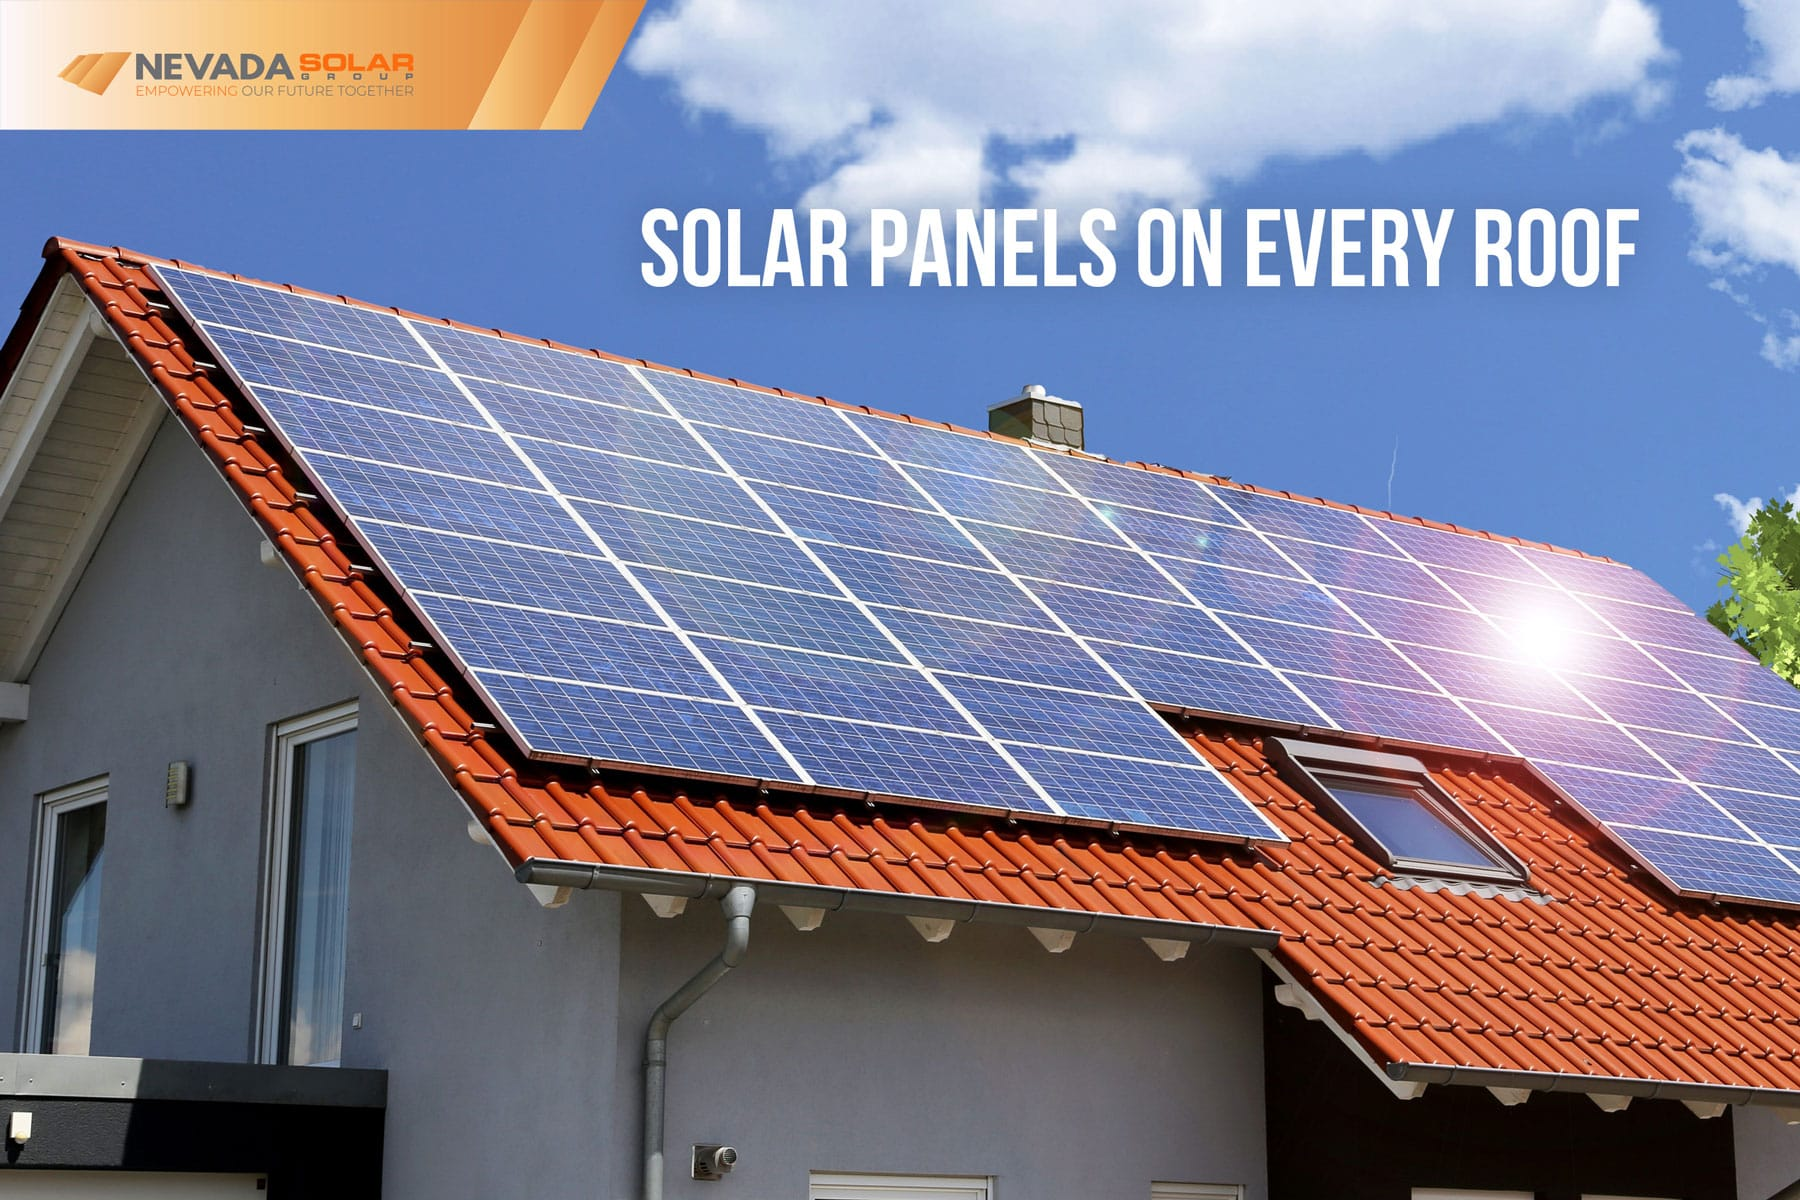 Solar-Panels-On-The-House-Roof-In-Nevada